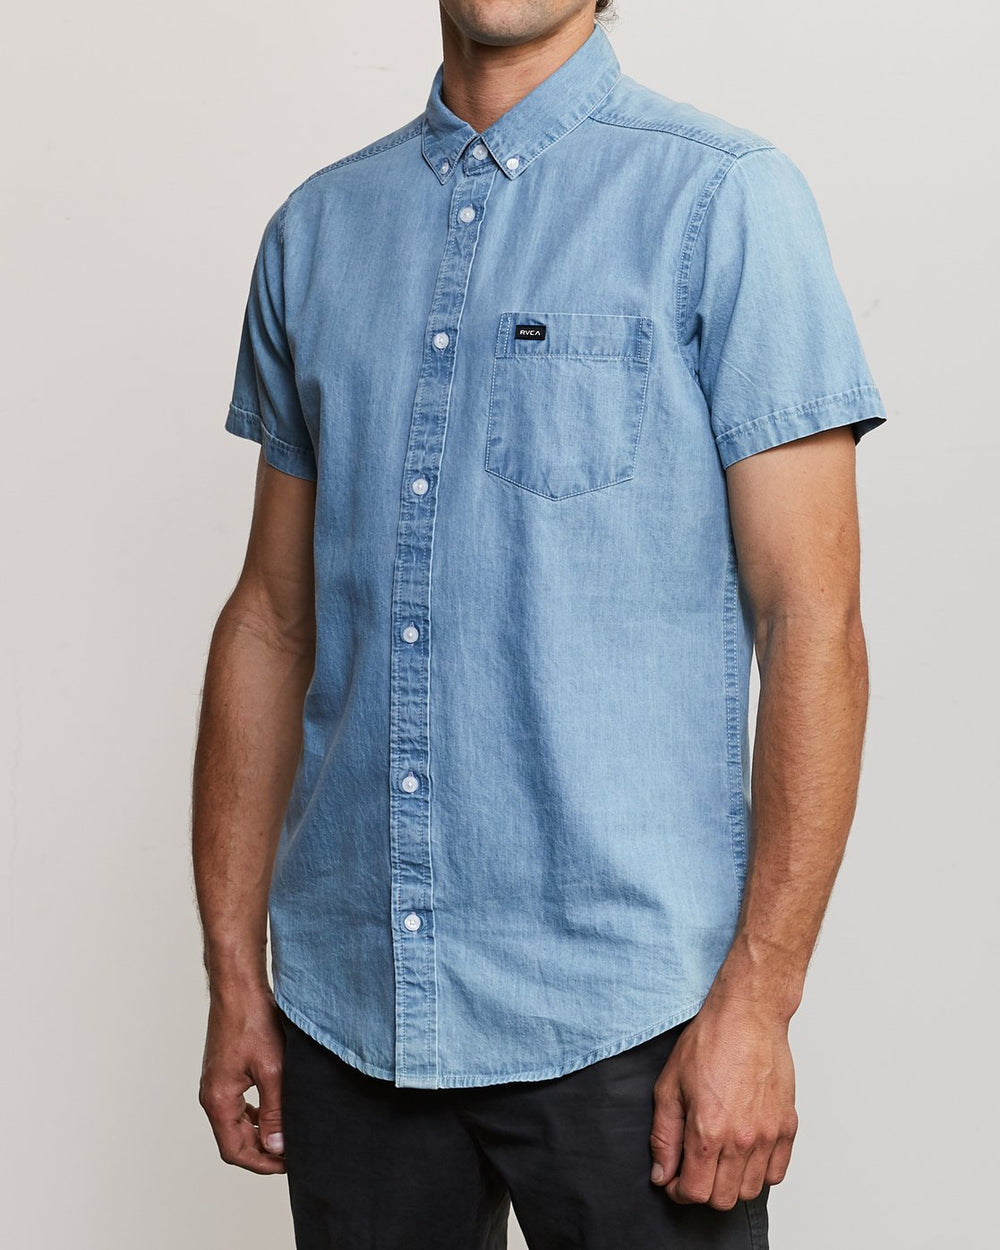 DEAD FLAG WASHED BUTTON-UP SHIRT